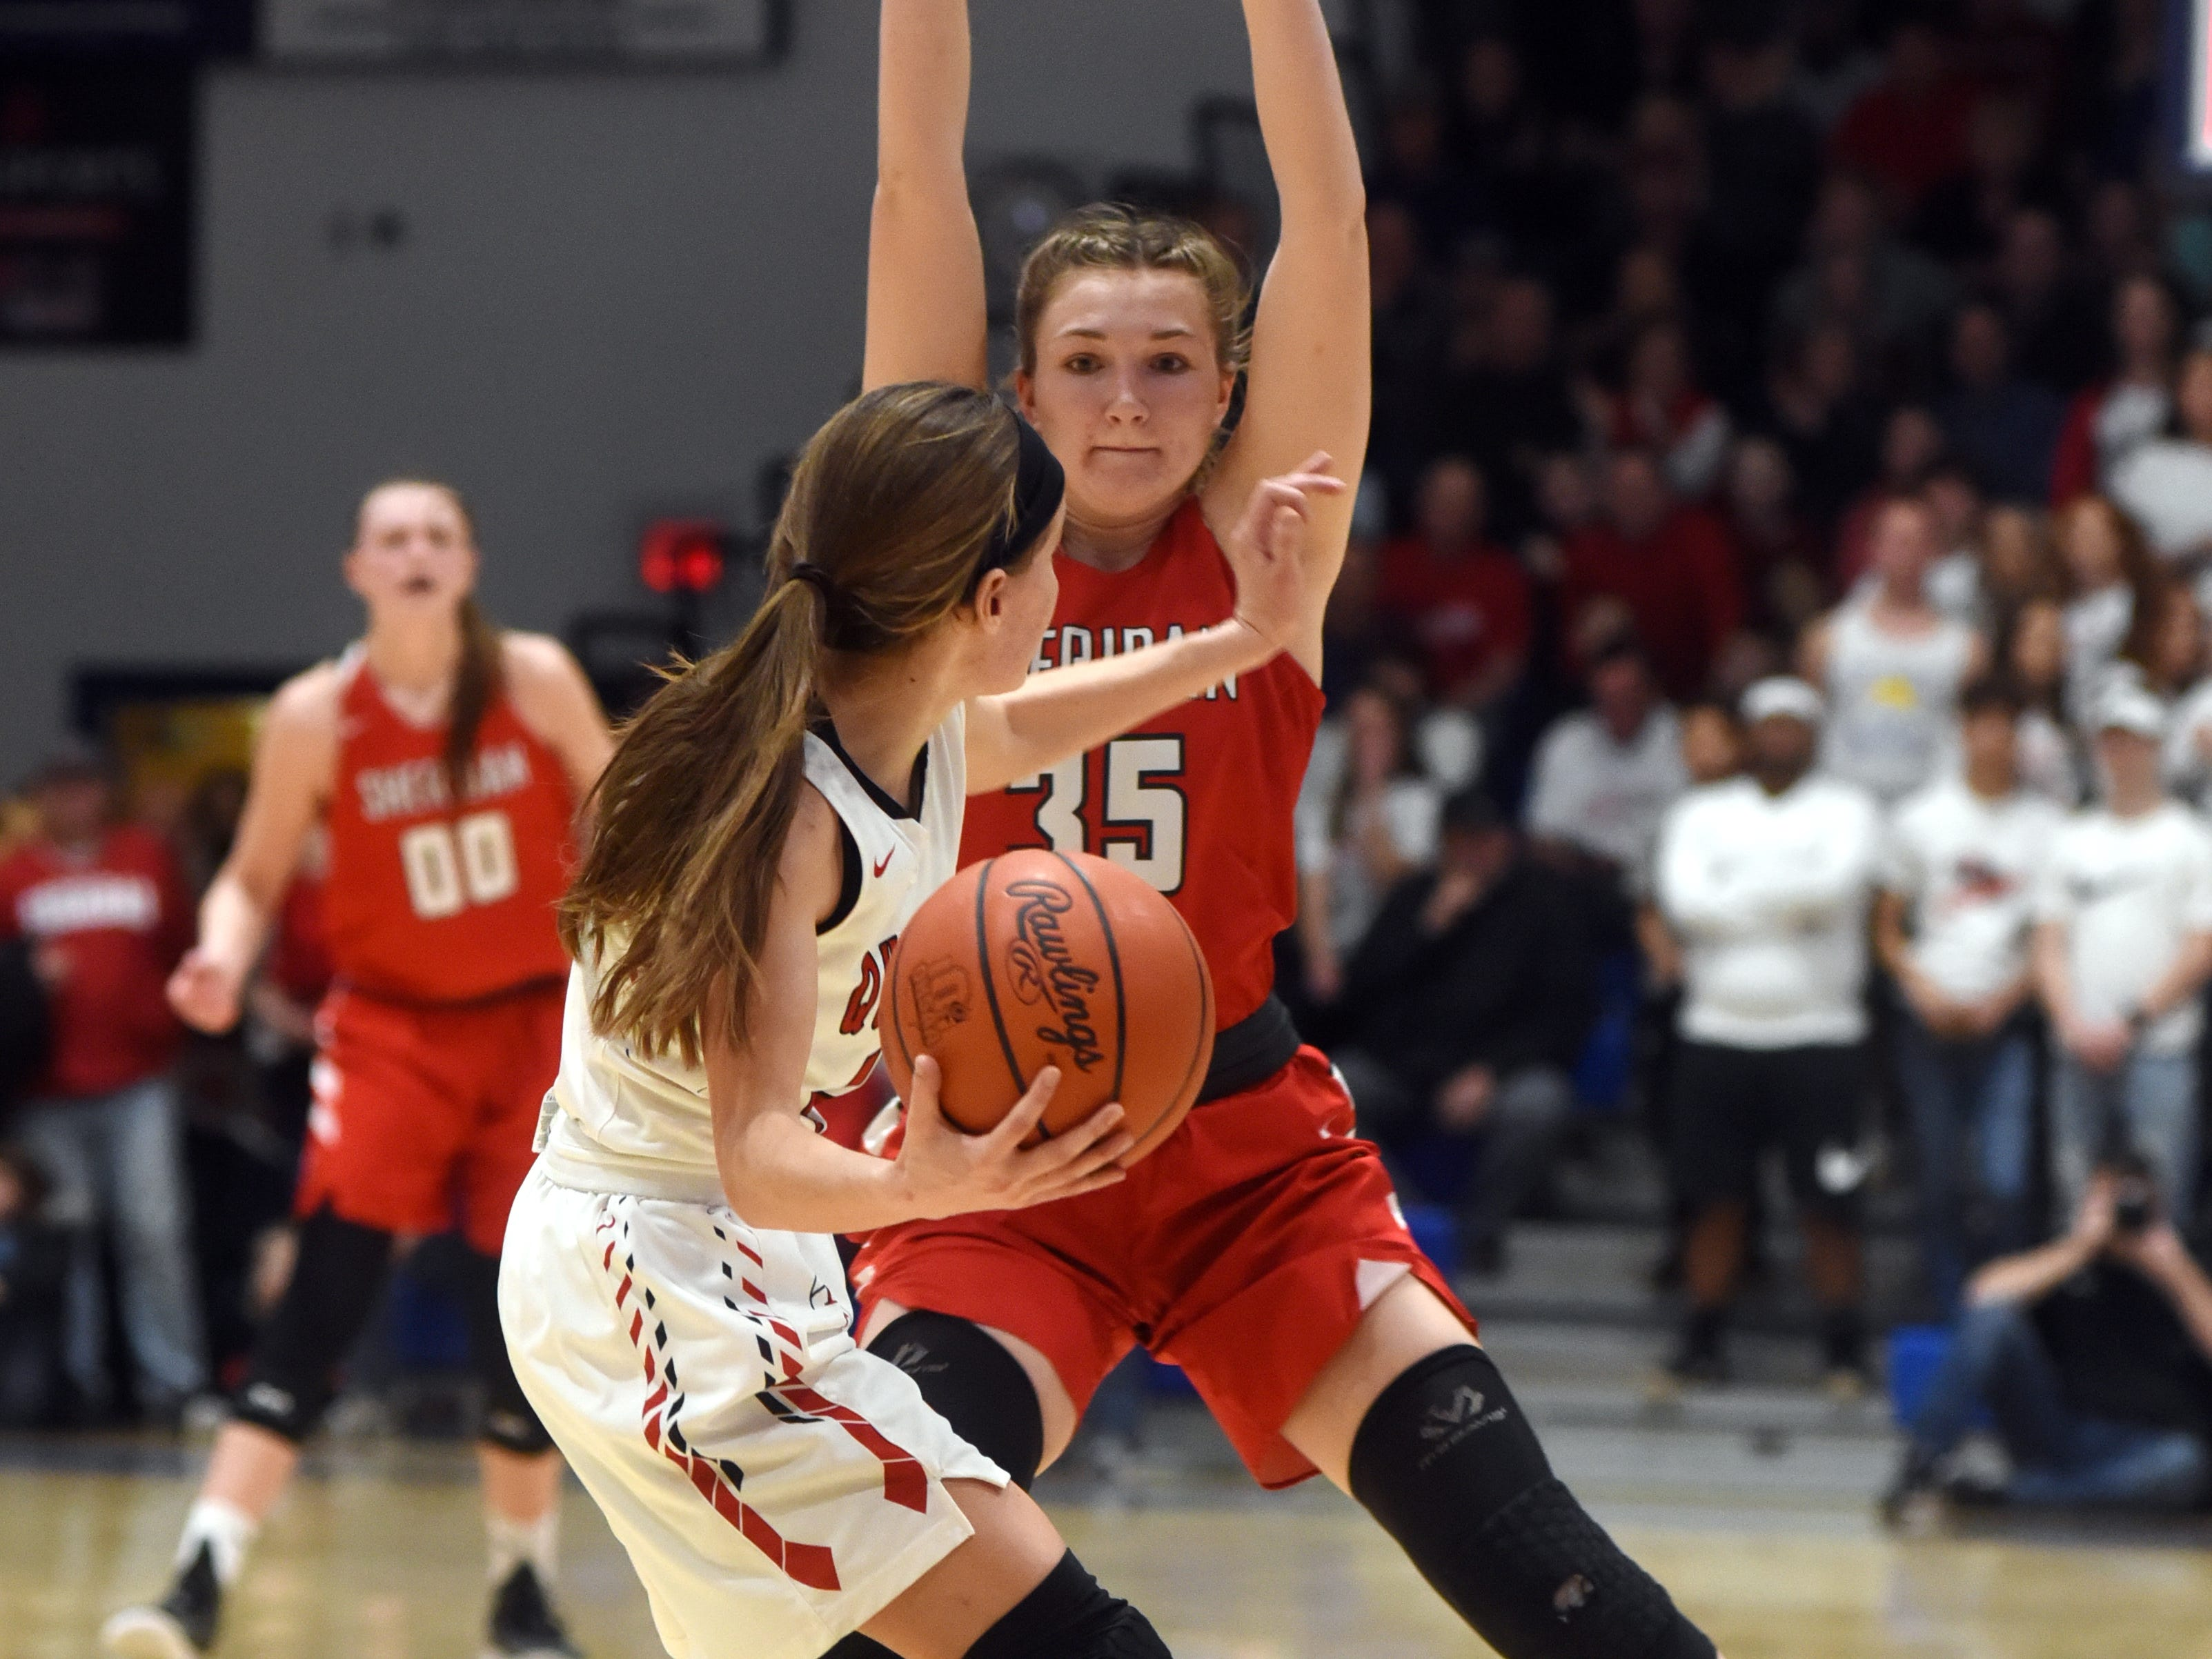 Sheridan's Jenna Montgomery plays defense against New Philadelphia. Sheridan reached its first state tournament since 2004 with a 48-46 win on Friday night at Winland Memorial Gymnasium.